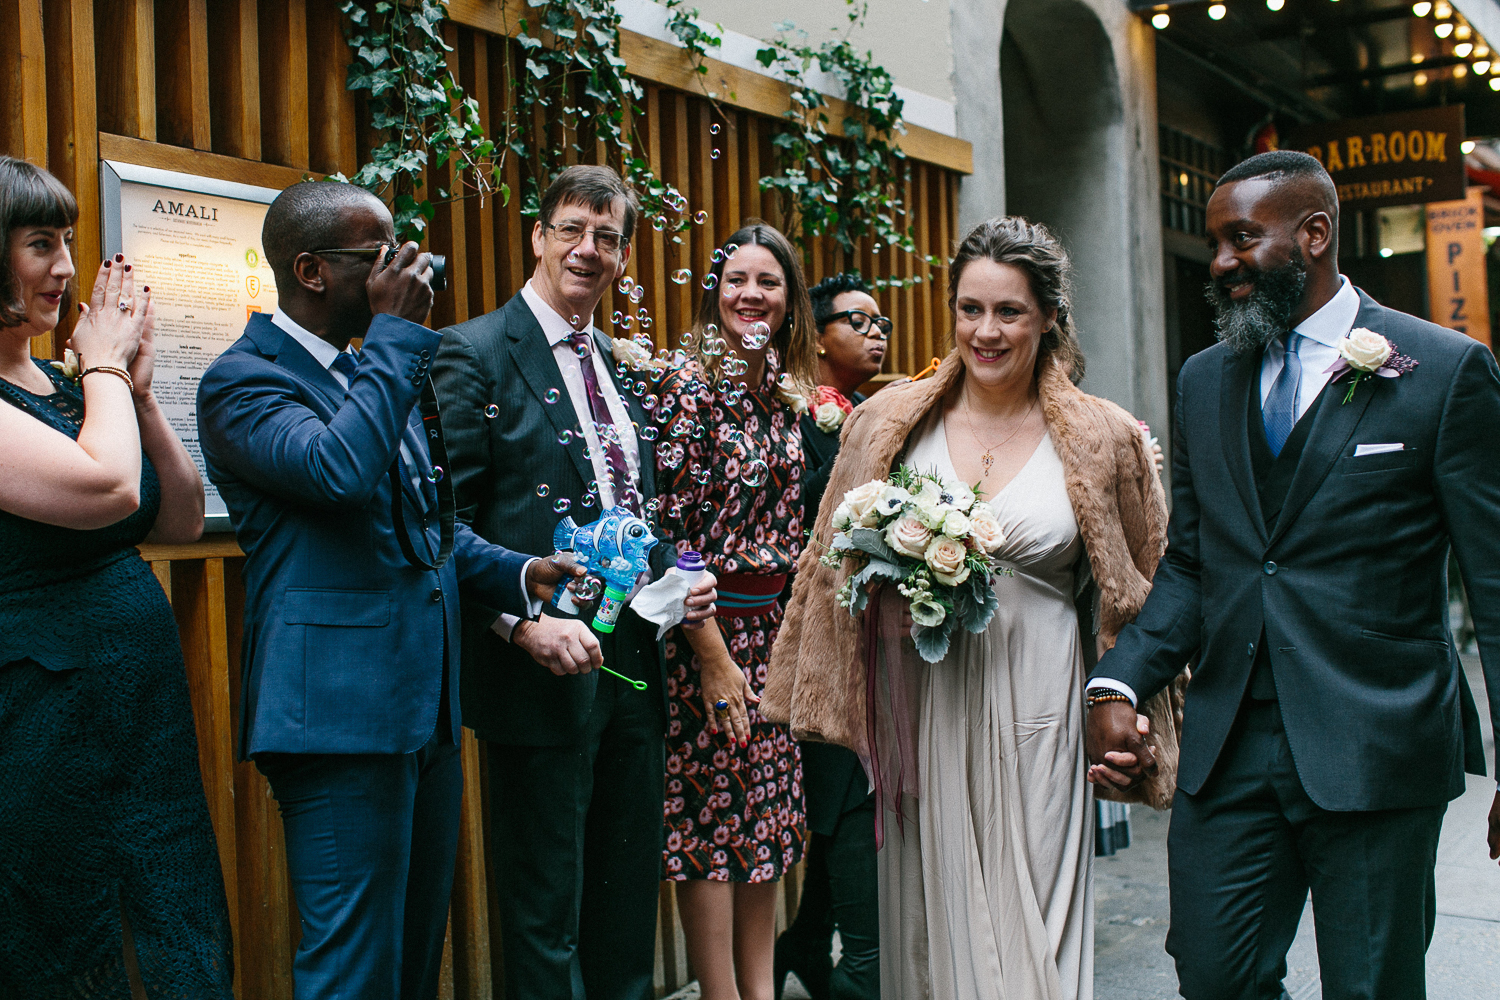 Introducing the bride and groom with bubbles at their intimate restaurant wedding in Manhattan. | Upper West Side Intimate Wedding | Kate & Sylvester's wedding in Manhattan.